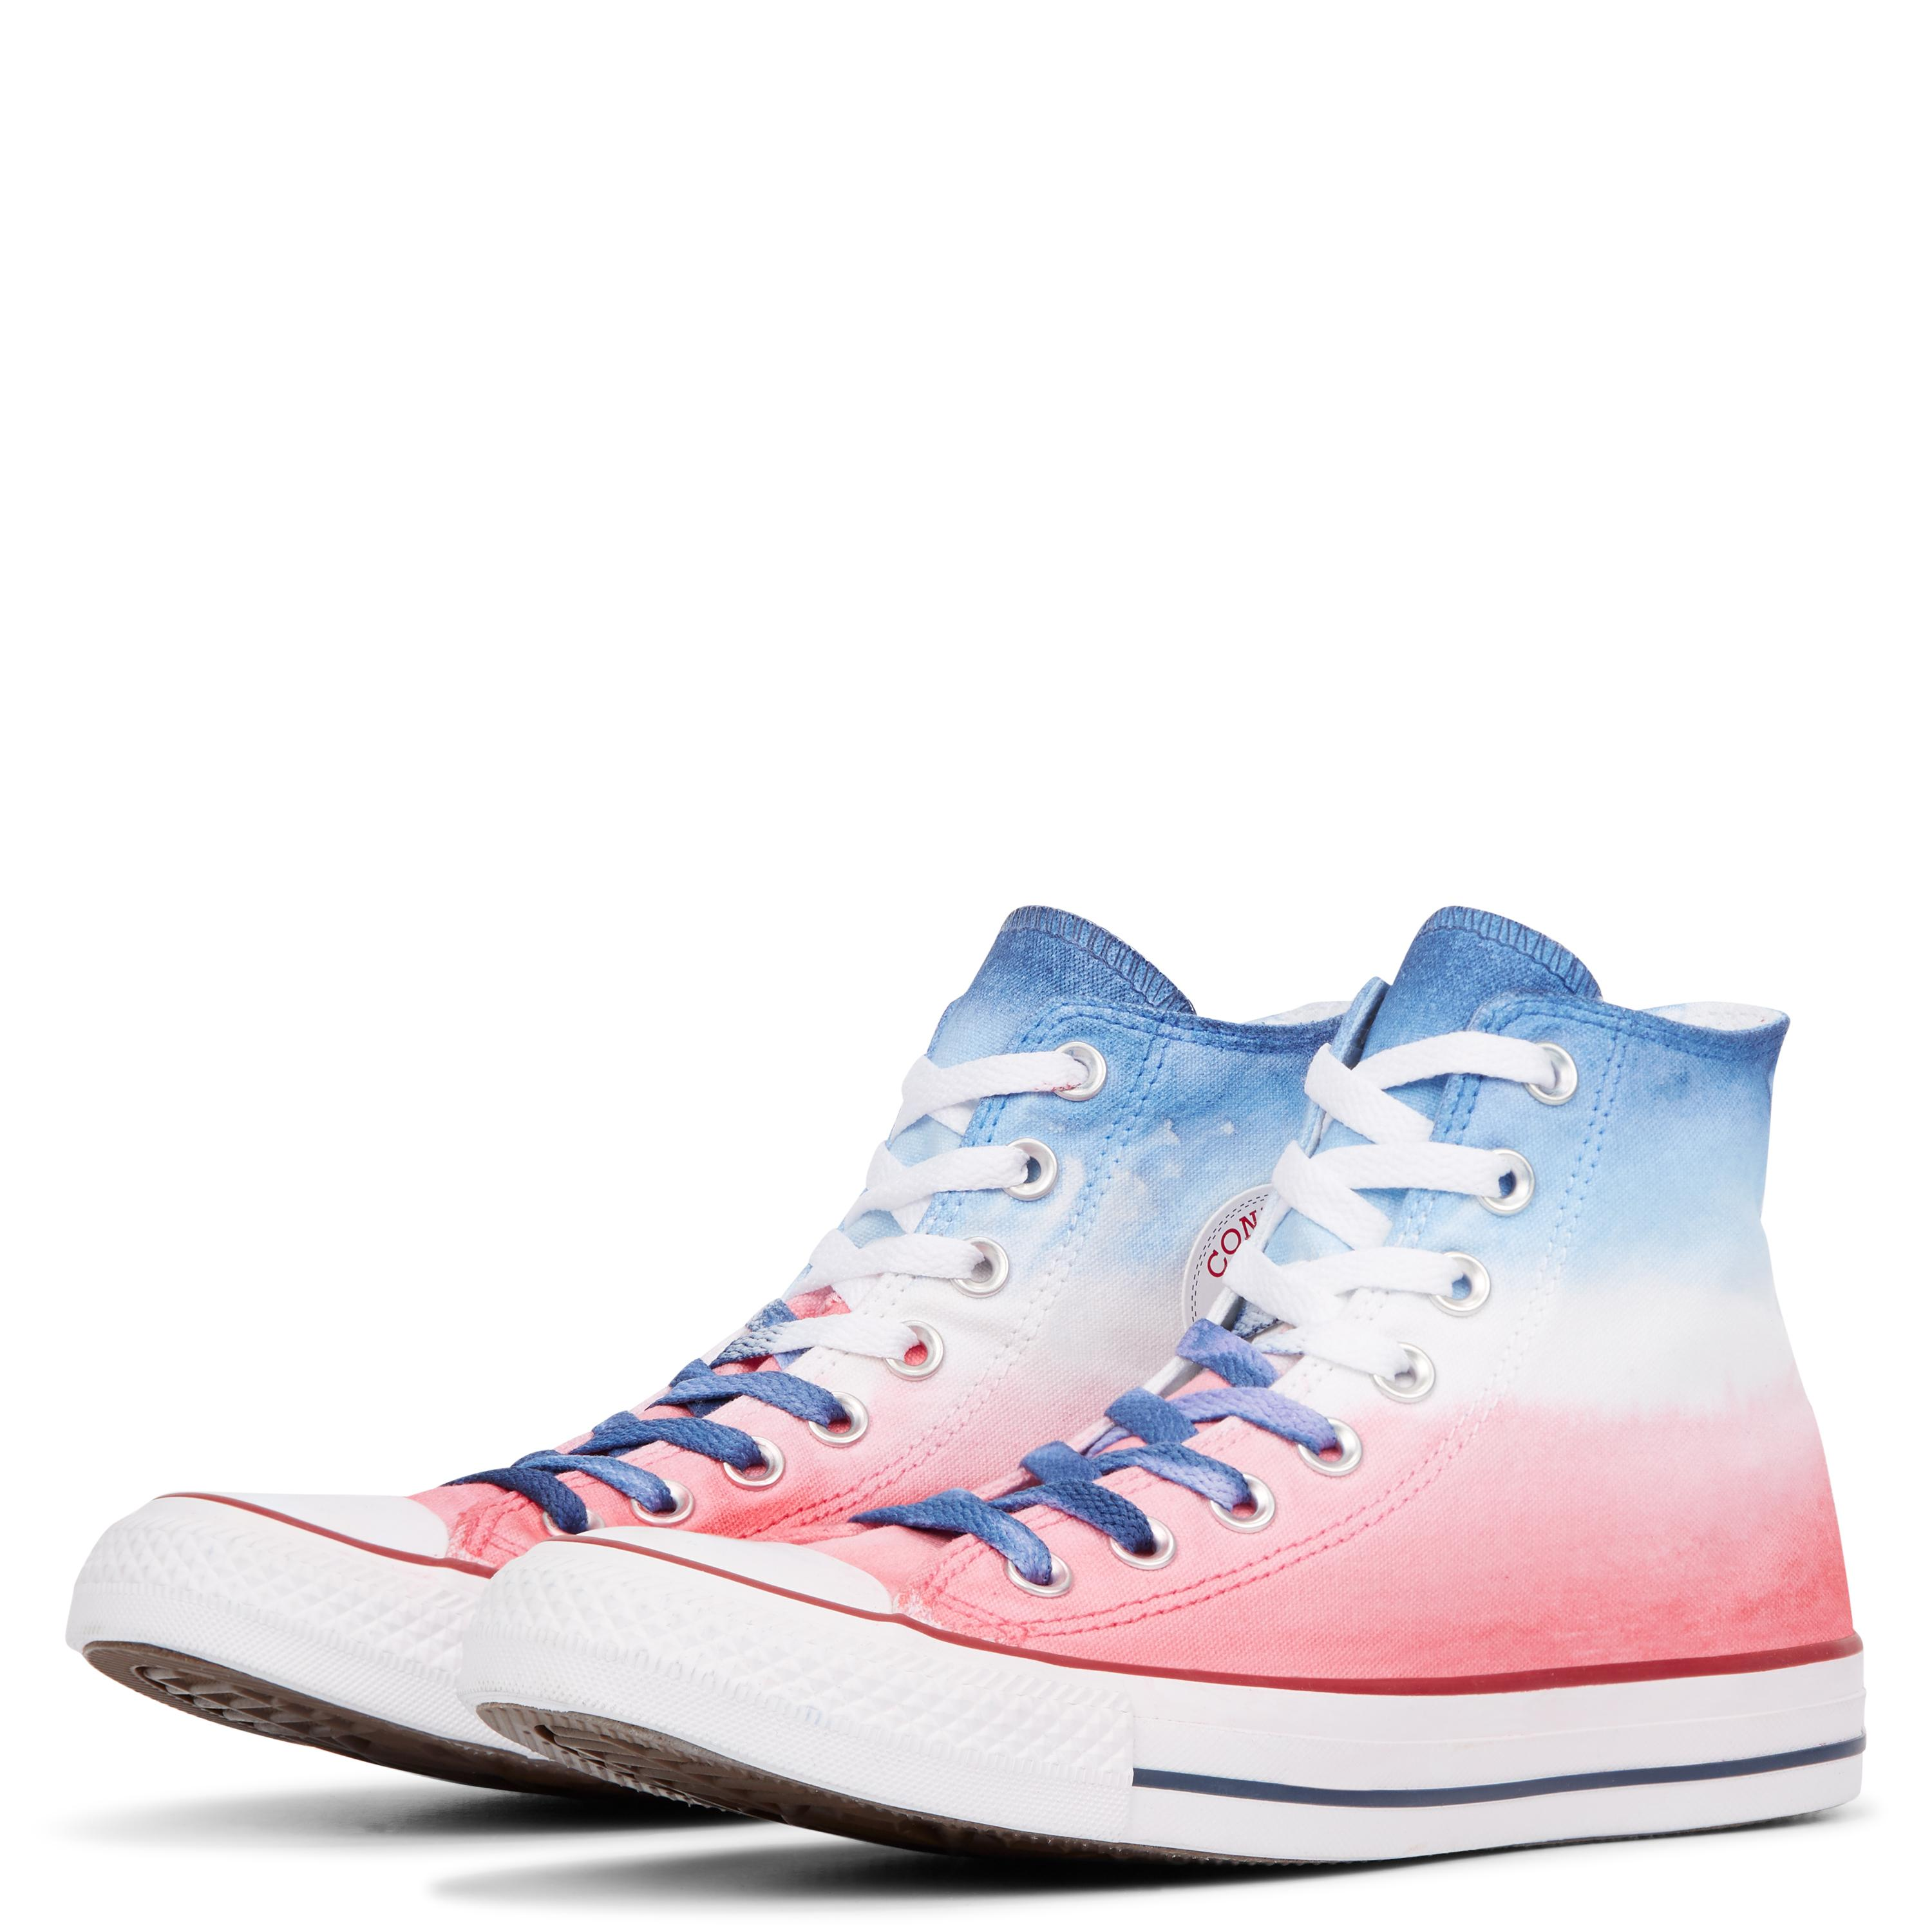 61d9af6579a5 Converse Chuck Taylor All Star Dip Dye High Top in Blue for Men - Lyst